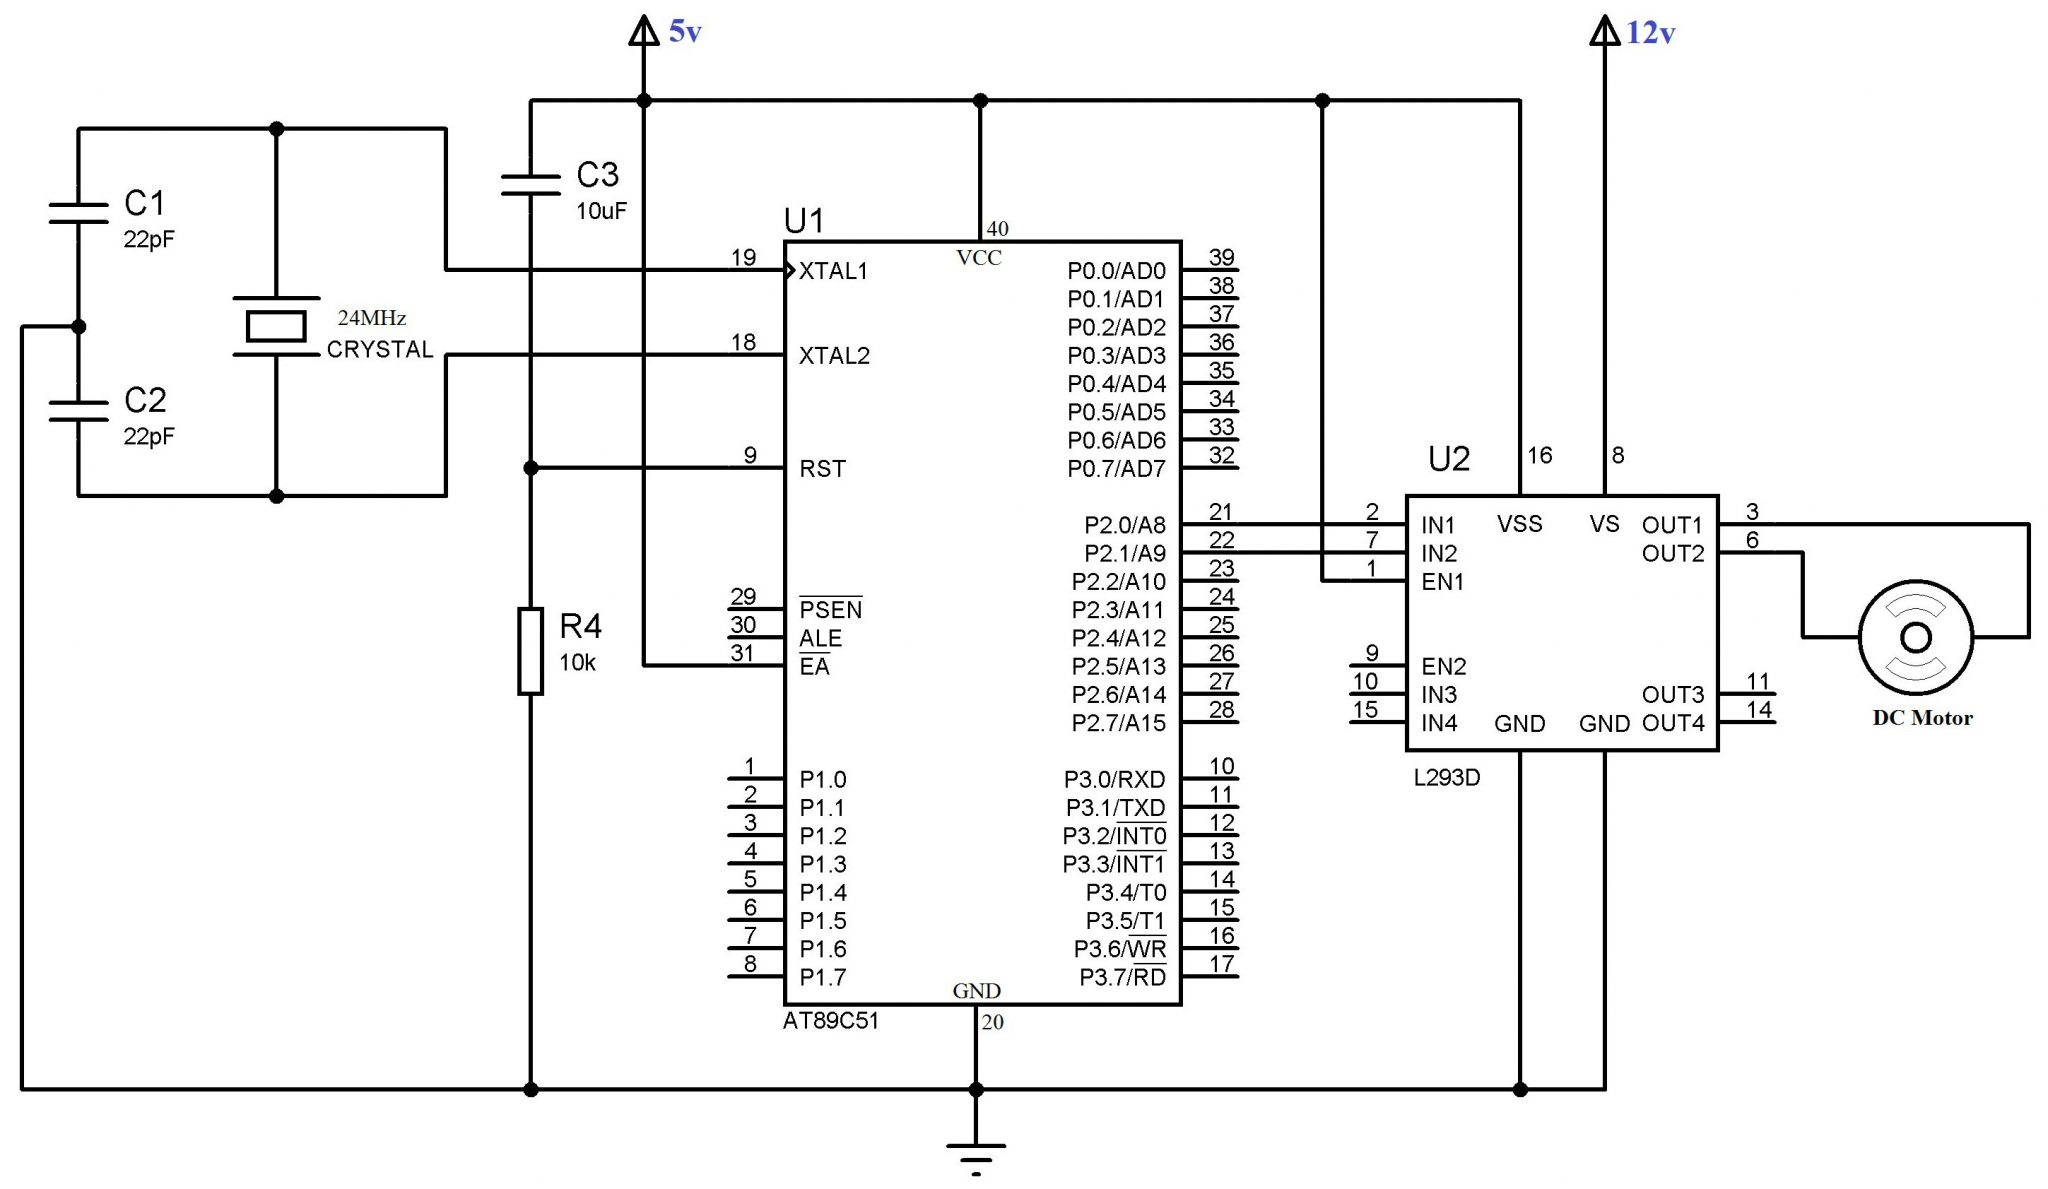 Interfacing Dc Motor With 8051 Using L293d At89c51 Keil C Troubleshooting Electric Control Circuits Wiring Simulation Circuit Diagram